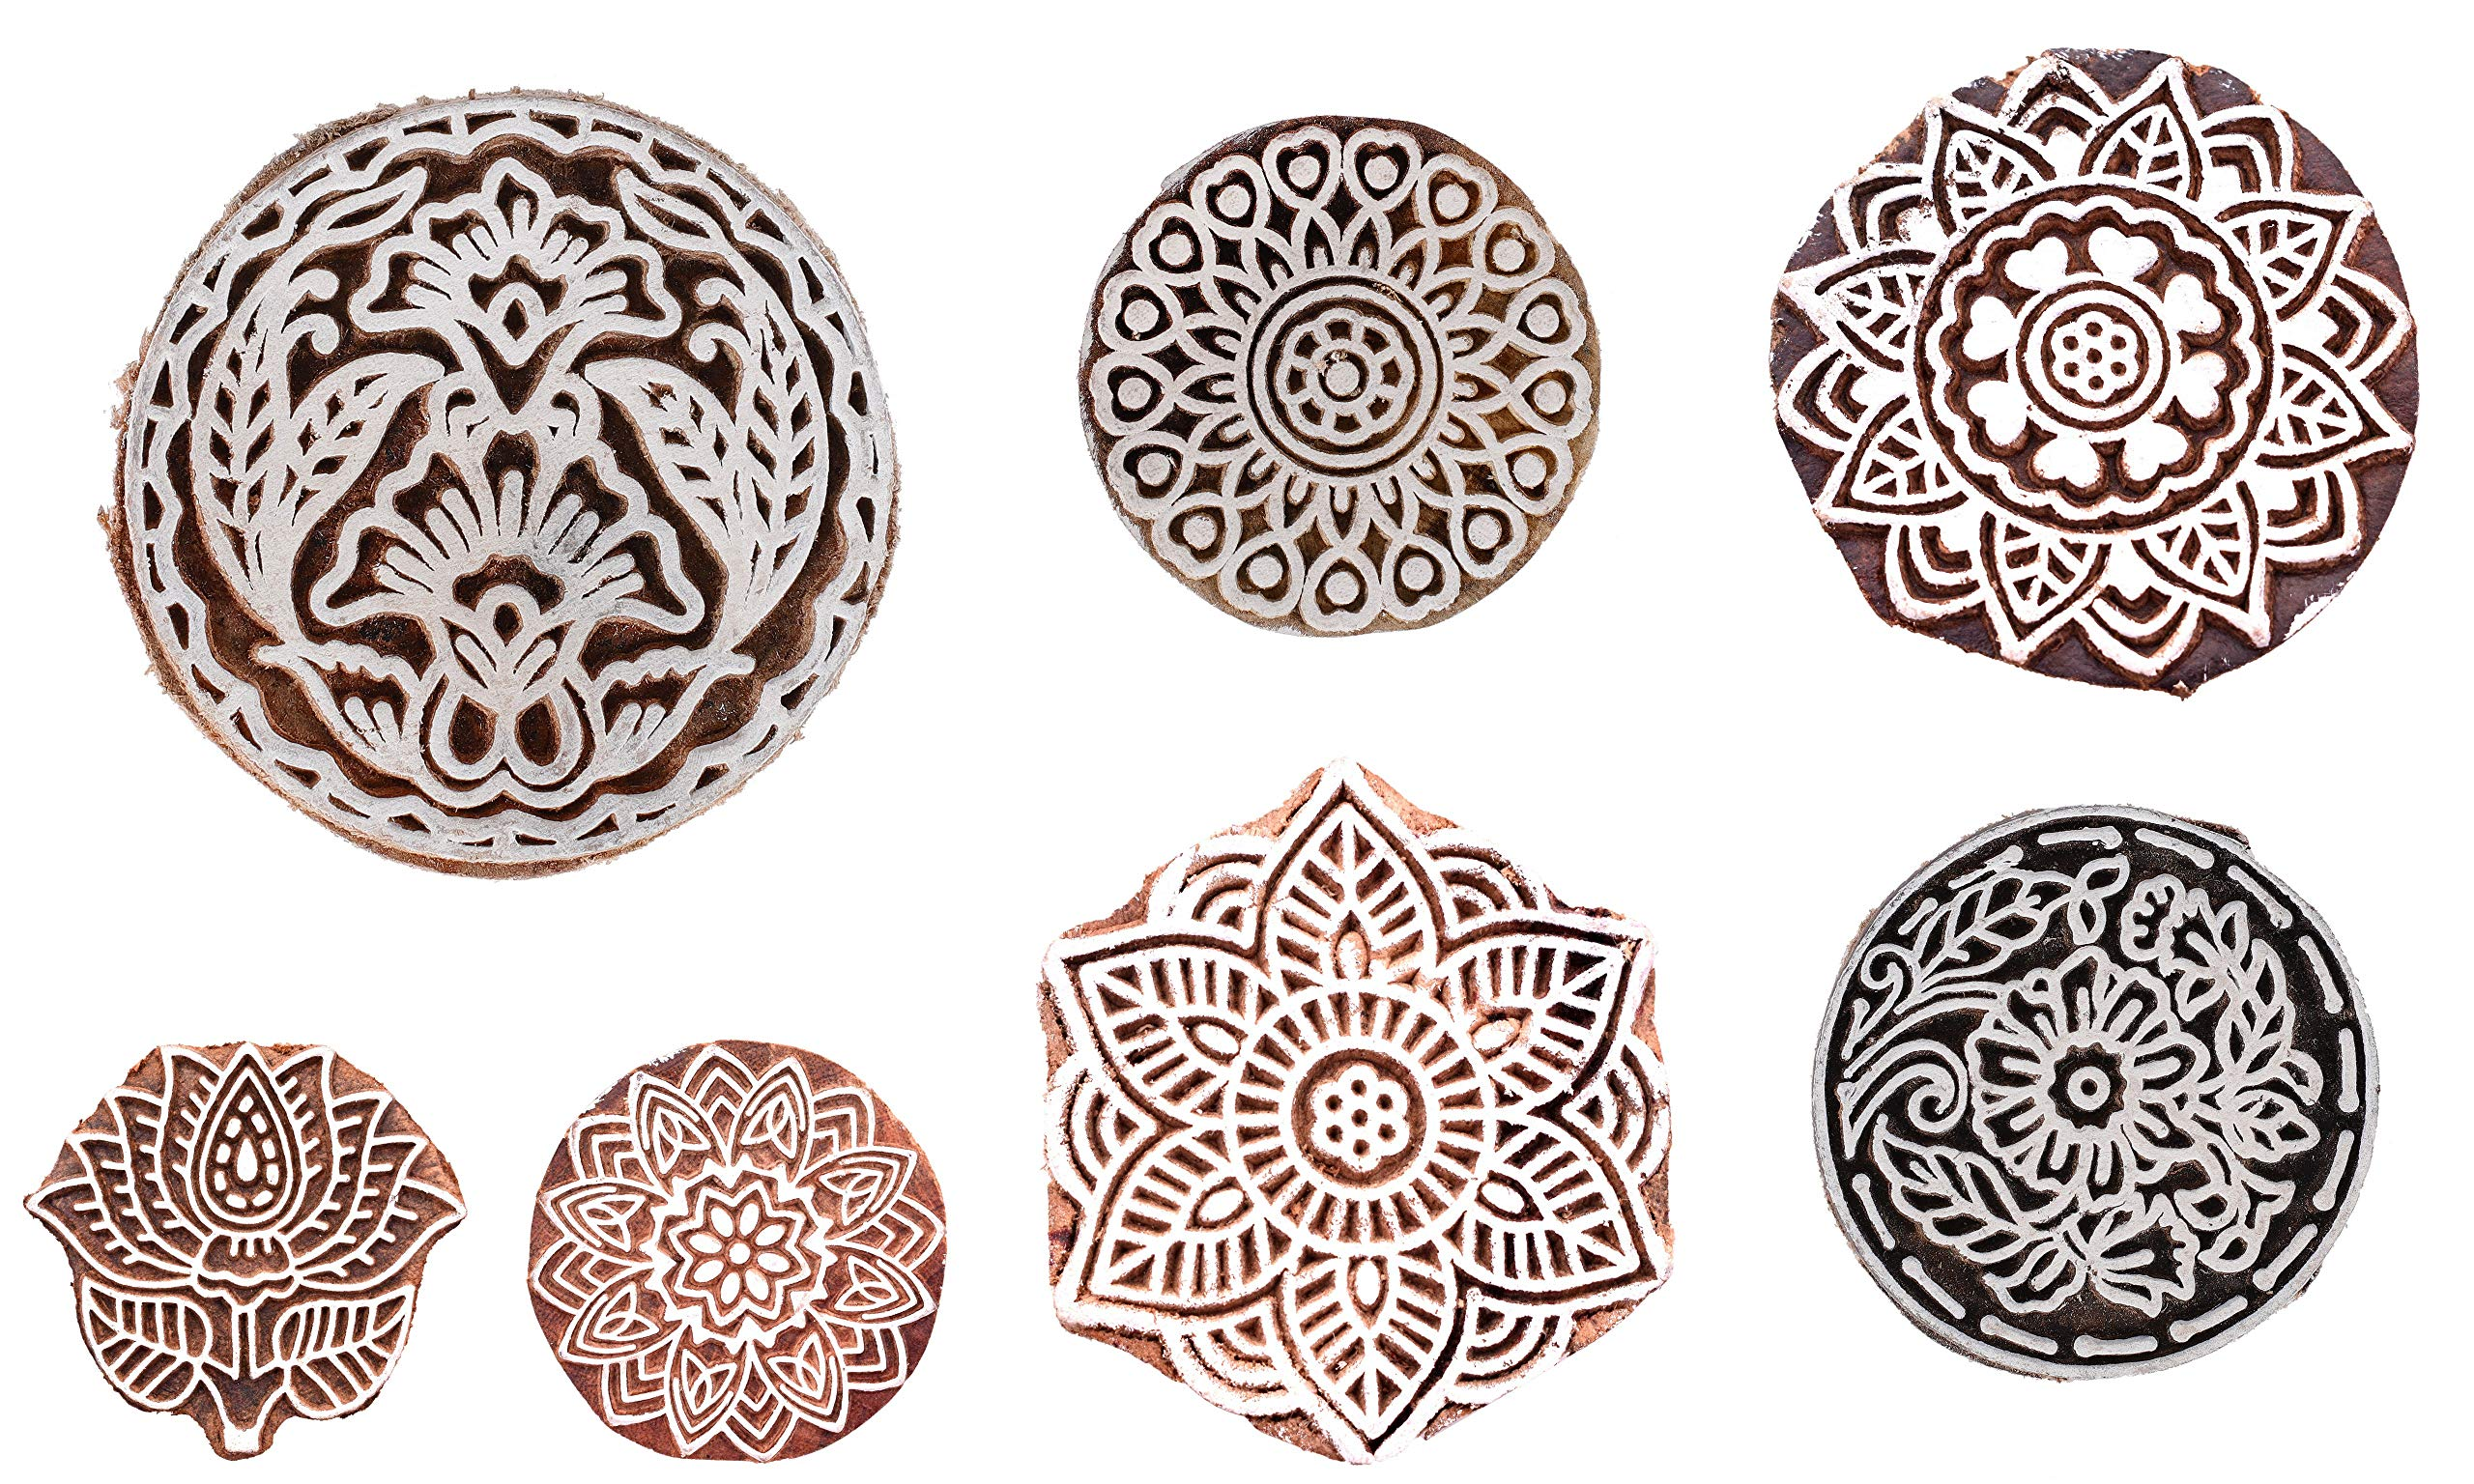 Handicraft-Palace Floral Wooden Blocks Indian Hand Carved Printed Stamps Textile Hand Painting Round Wood Block (10 pc Set)